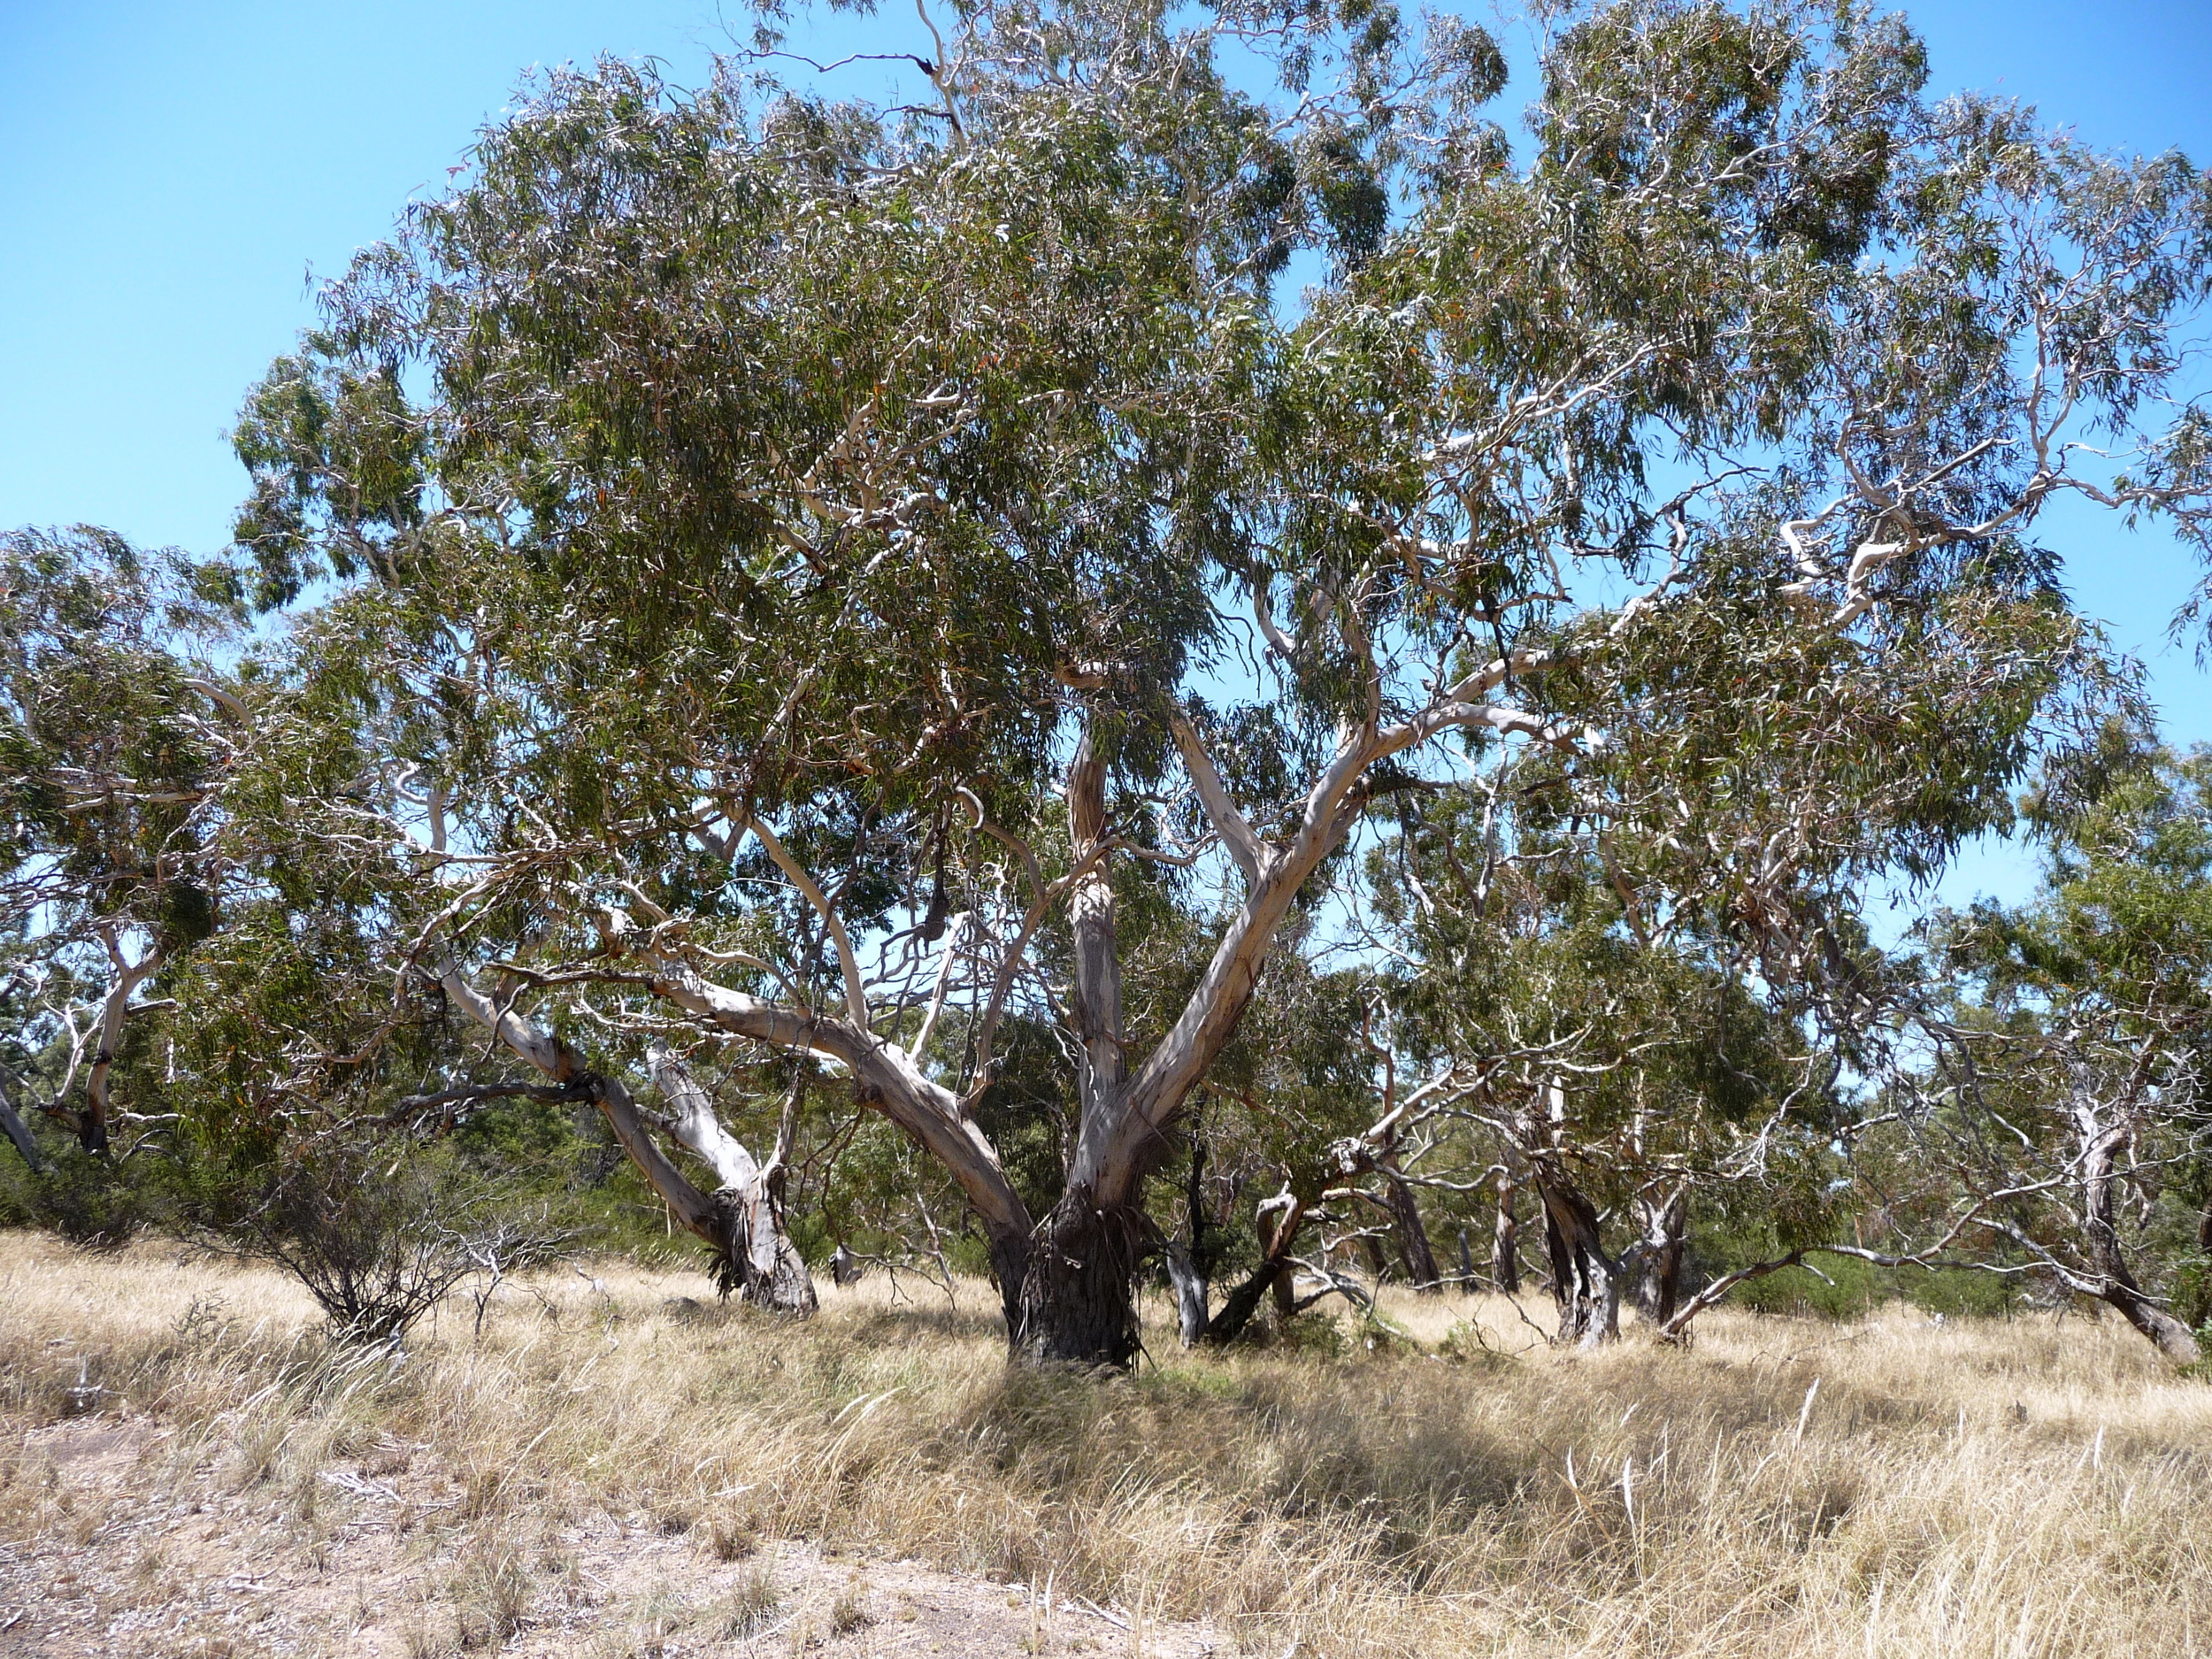 The Port Melbourne landscape would once have featured the beautiful rough-barked manna gum. Image:http://ianluntecology.com/